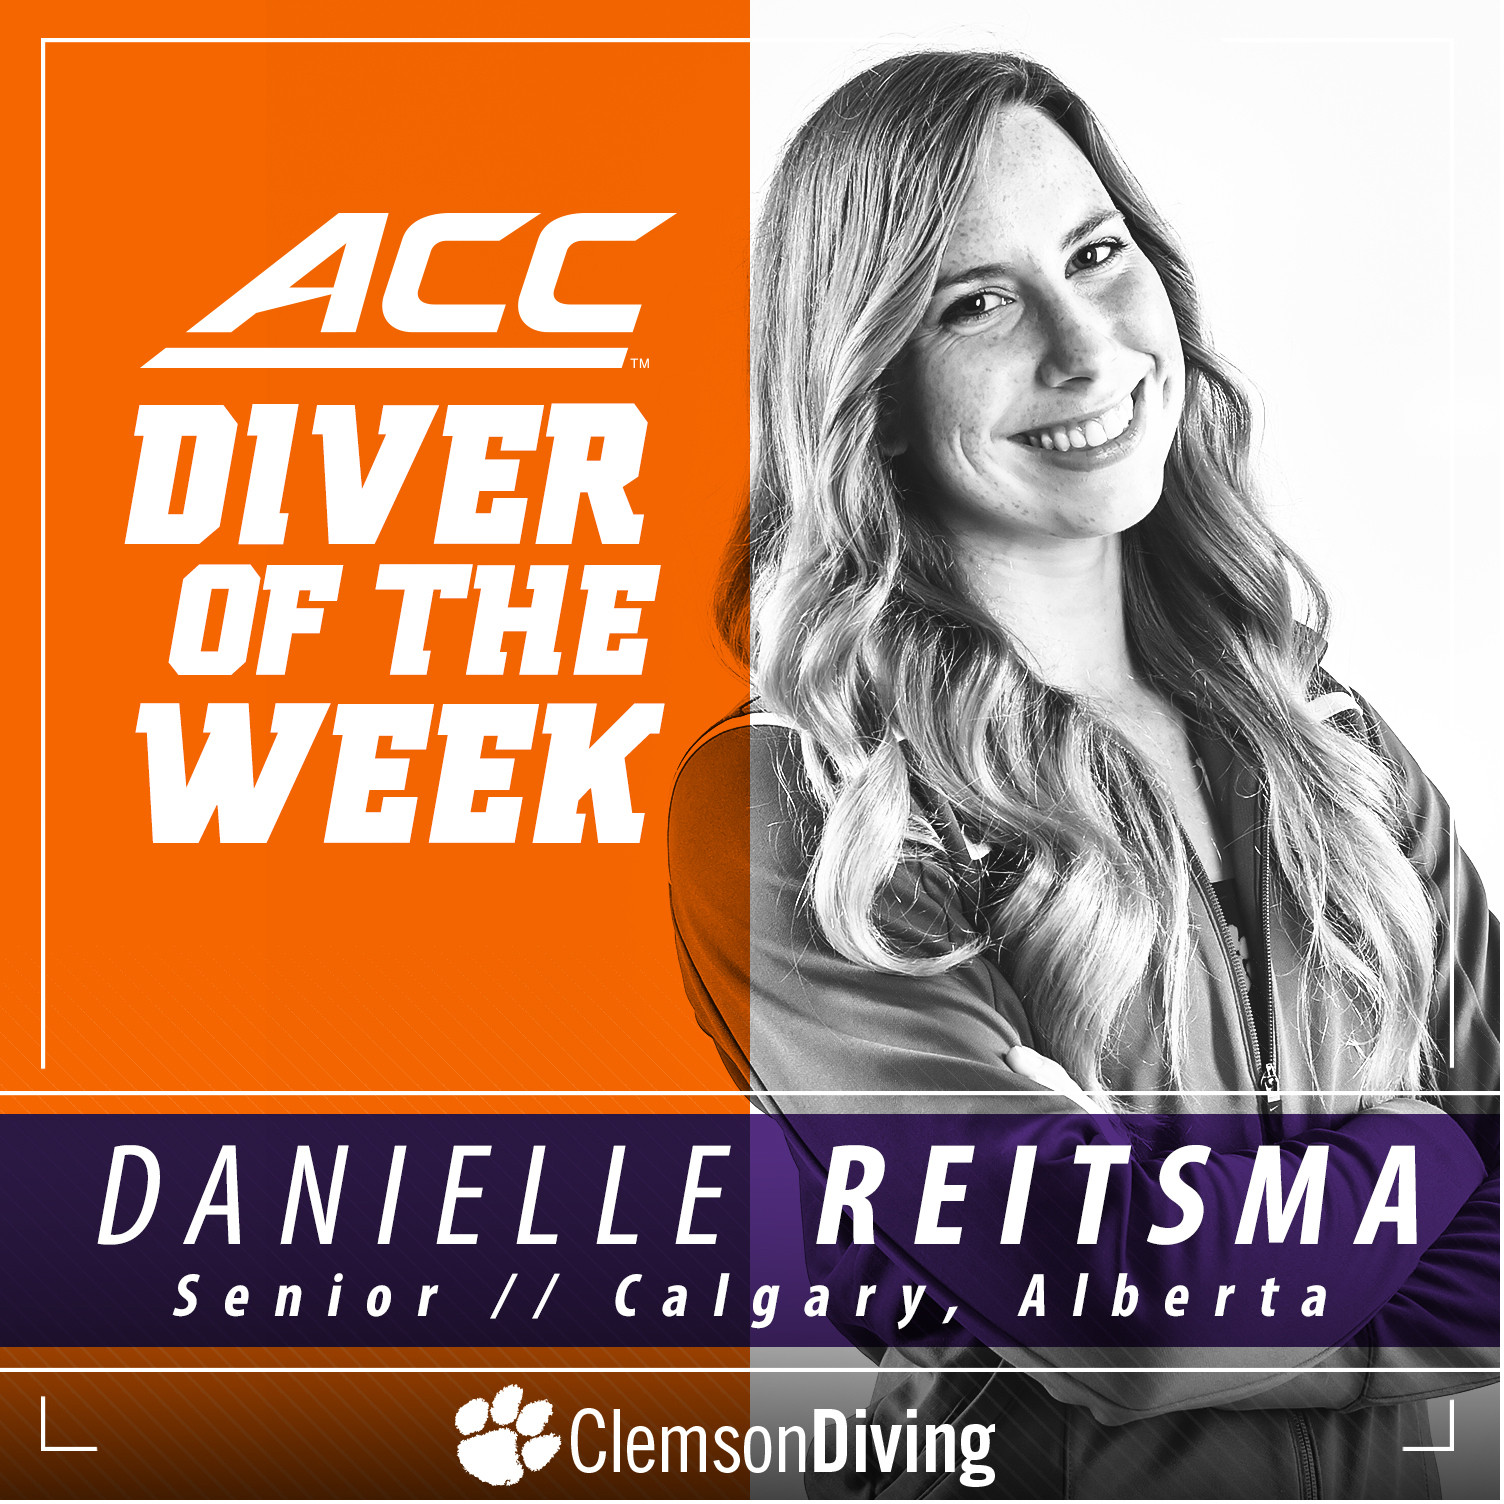 Reitsma Named ACC Diver of the Week